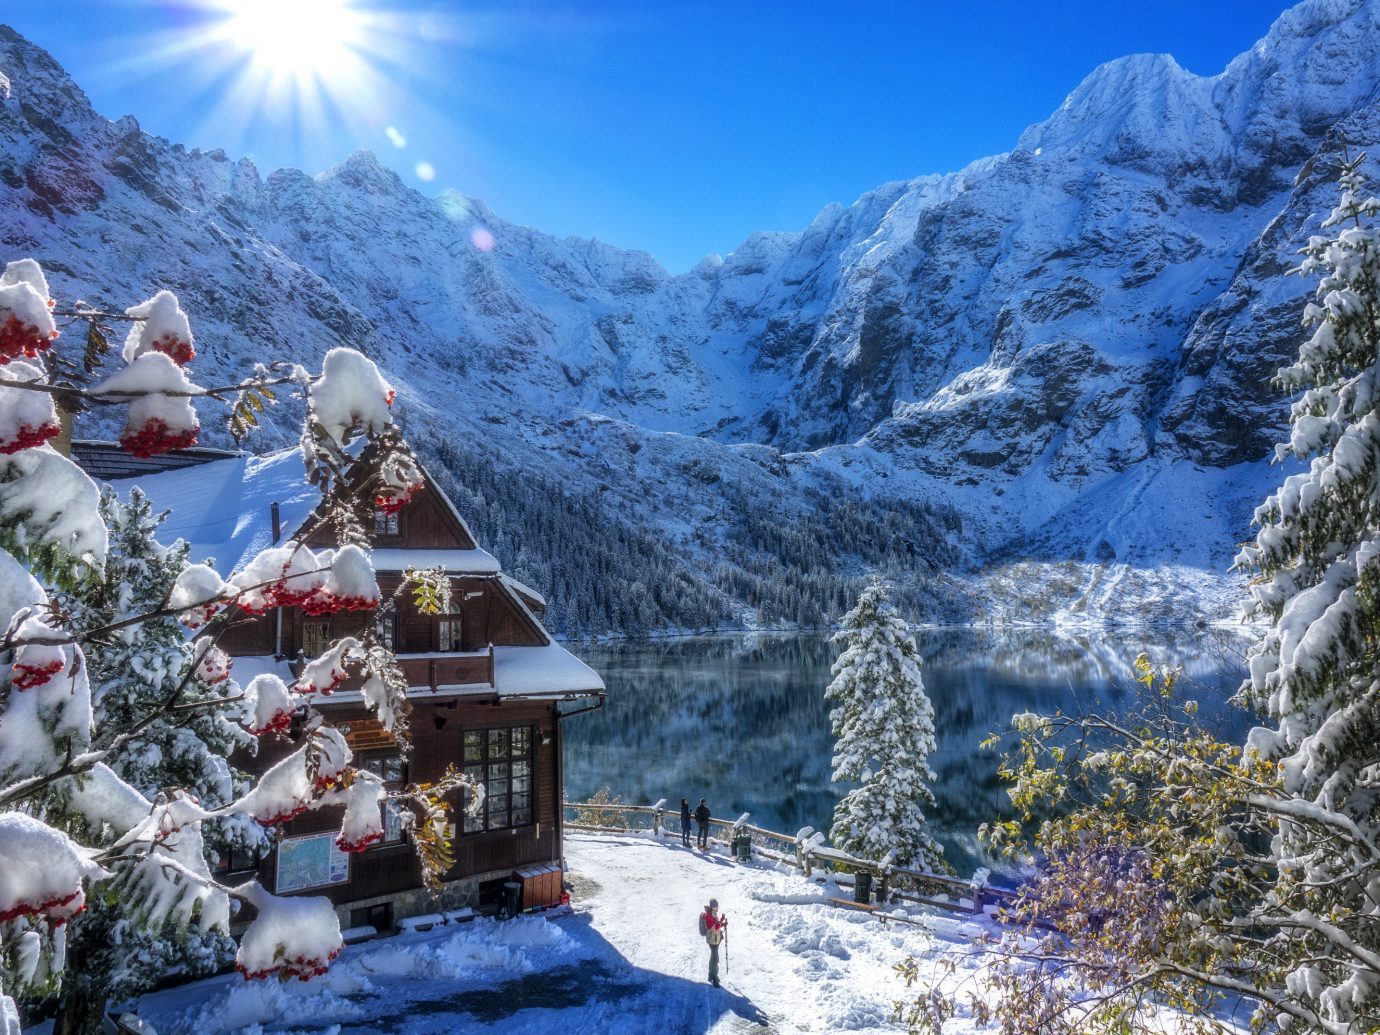 Croatia Eastern Europe europe Montenegro Slovenia Trip Ideas snow outdoor mountainous landforms mountain range mountain Winter weather geological phenomenon season Nature piste alps Resort valley fir surrounded